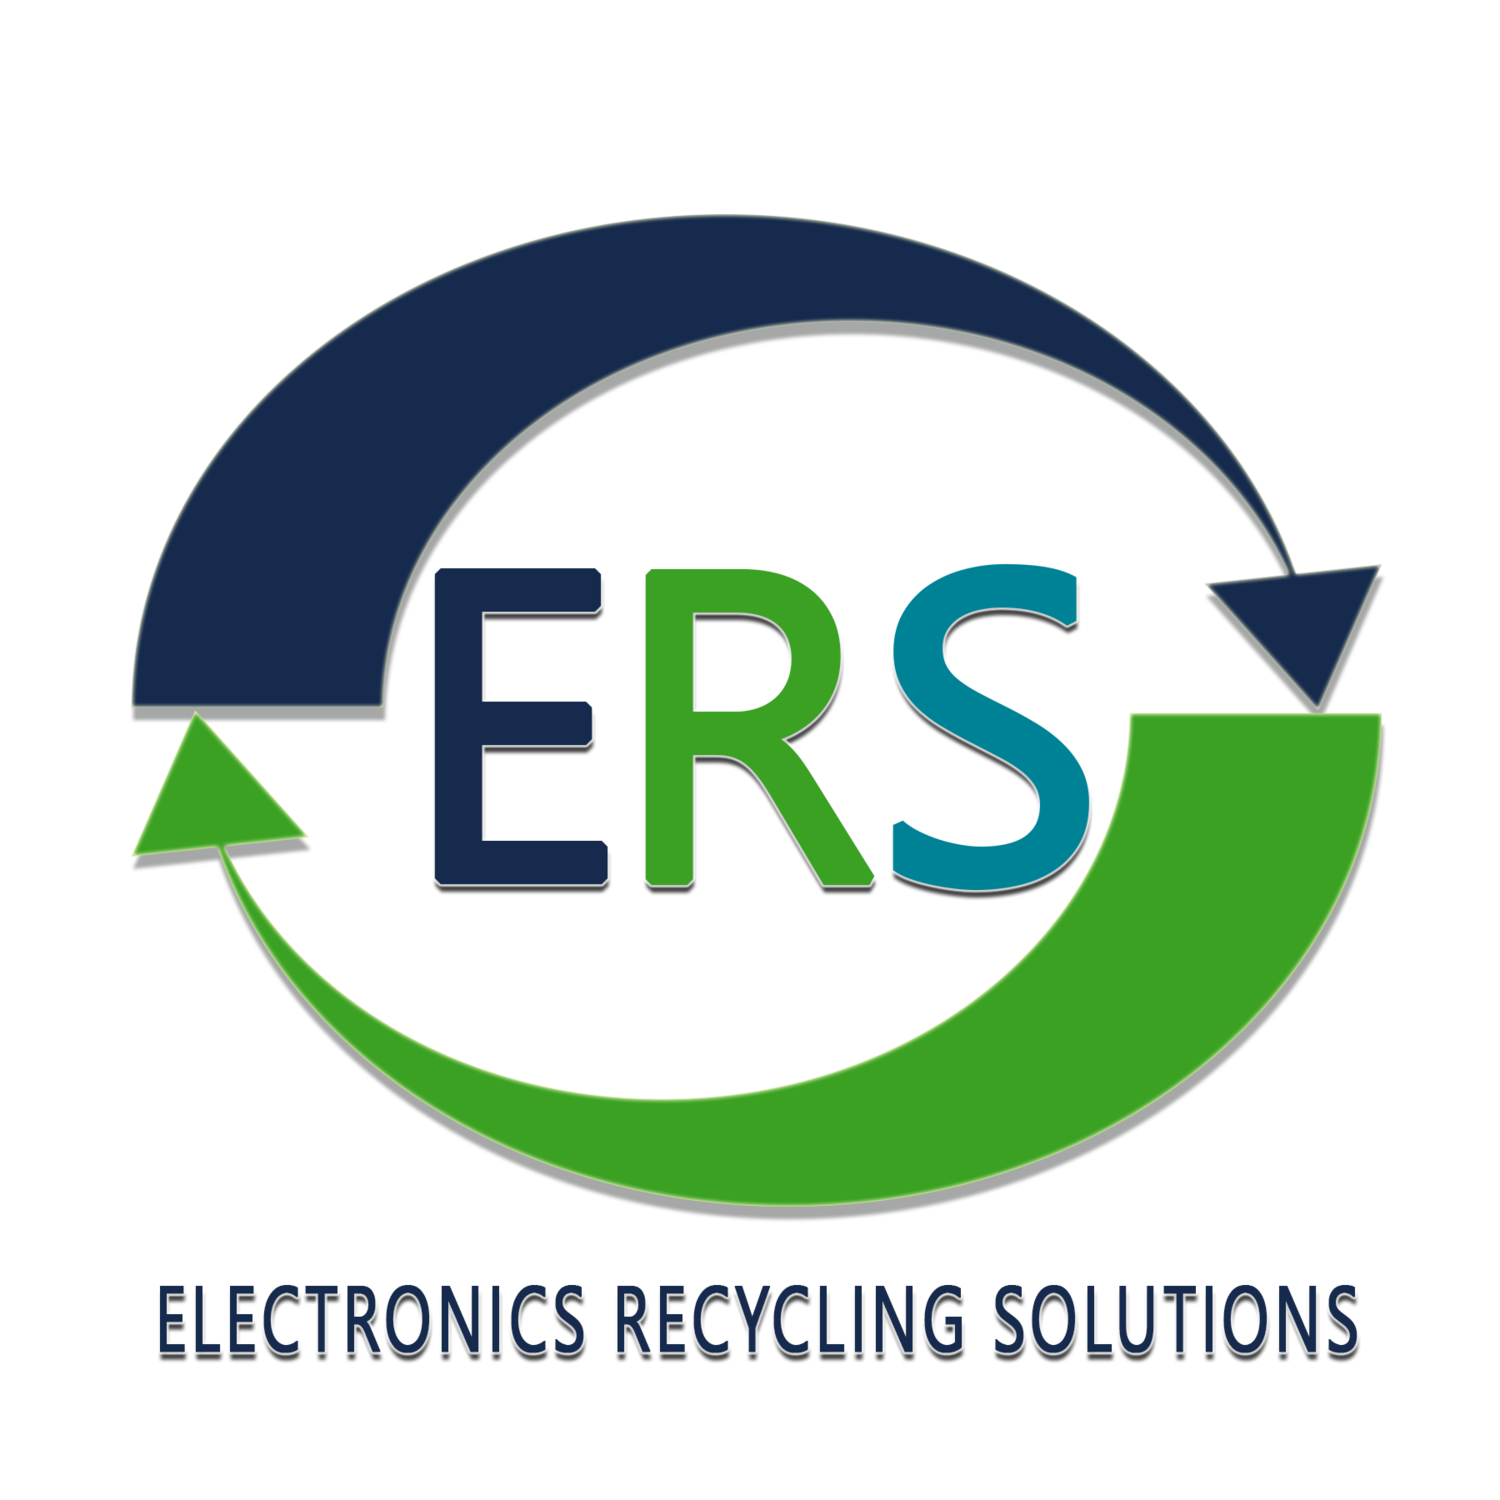 Electronics Recycling Solutions | Jobs and Autism | Nashville Recycling